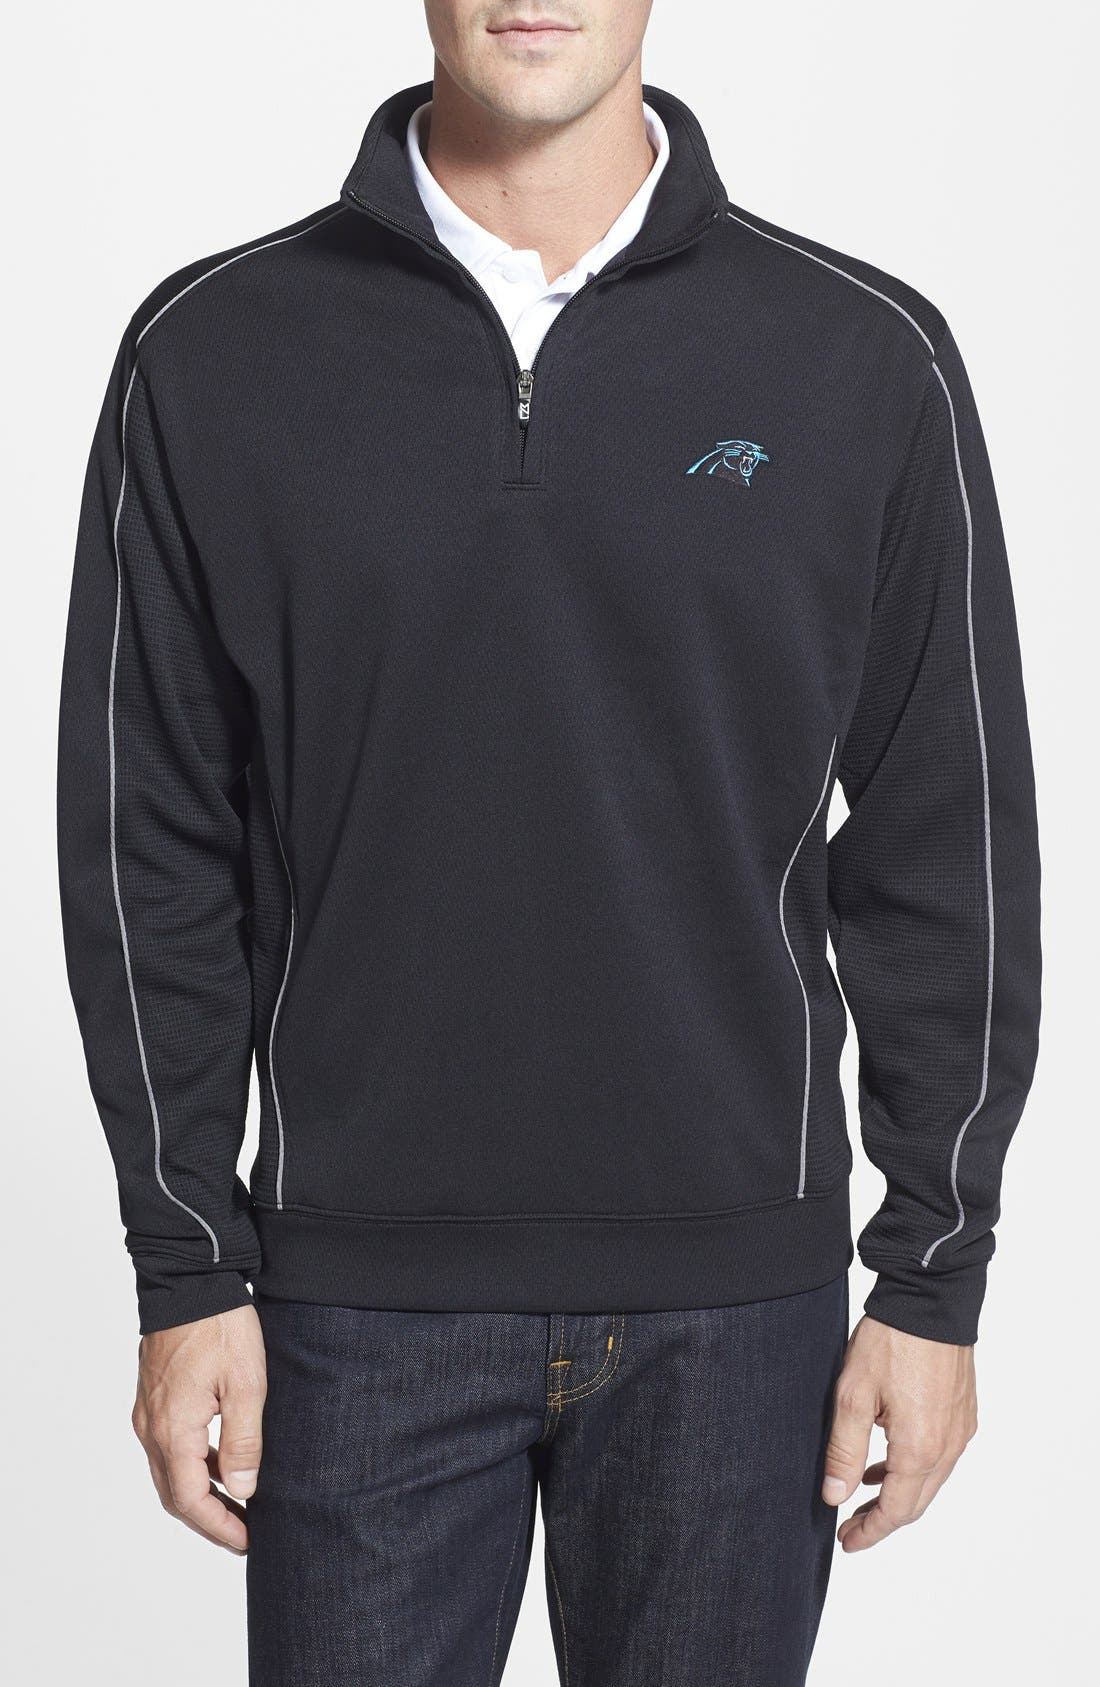 Carolina Panthers - Edge DryTec Moisture Wicking Half Zip Pullover,                         Main,                         color, 001